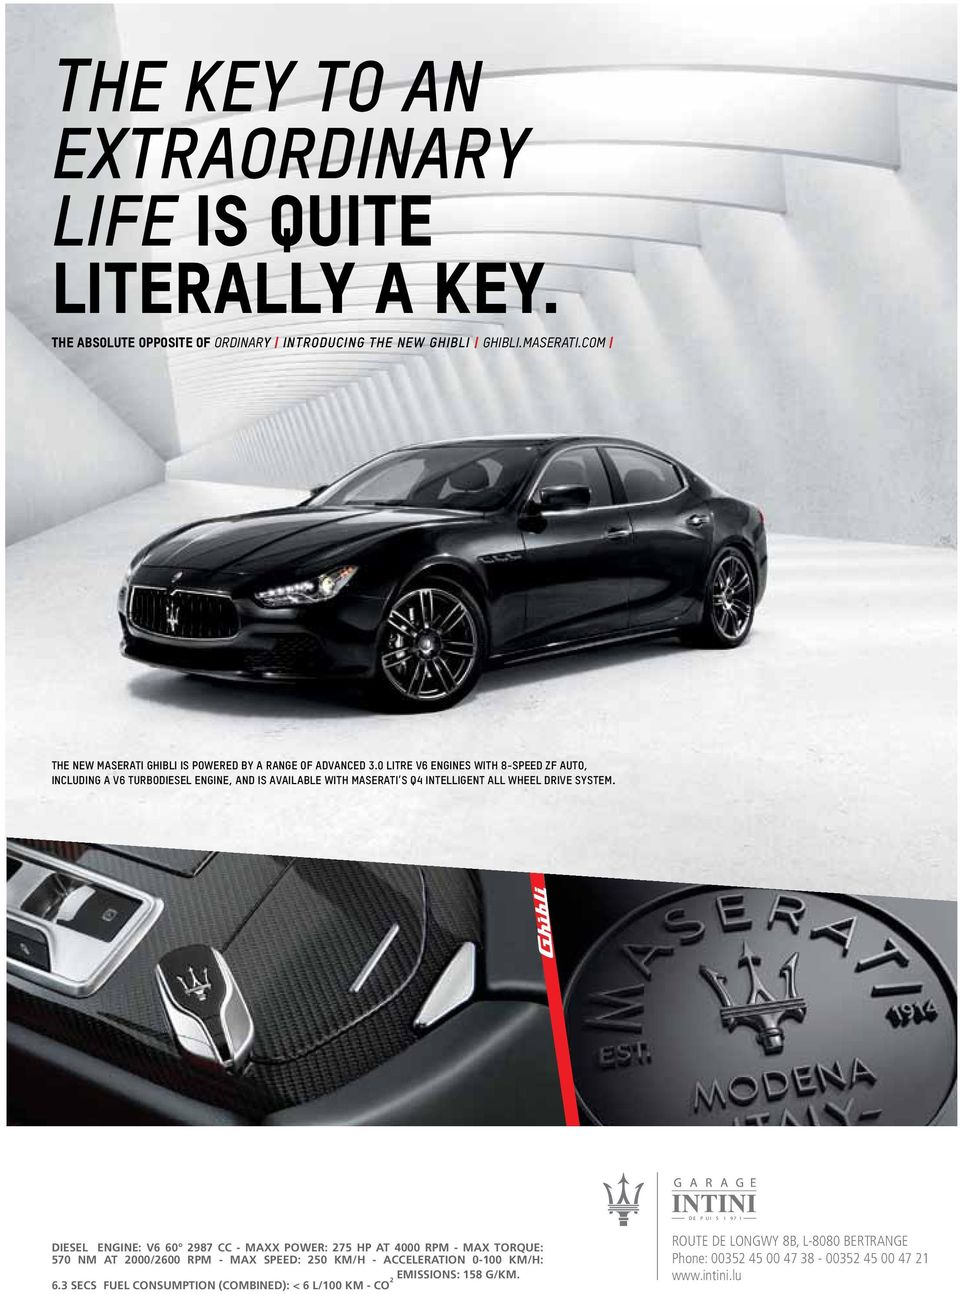 0 LITRE V6 ENGINES WITH 8-SPEED ZF AUTO, INCLUDING A V6 TURBODIESEL ENGINE, AND IS AVAILABLE WITH MASERATI S Q4 INTELLIGENT ALL WHEEL DRIVE SYSTEM.